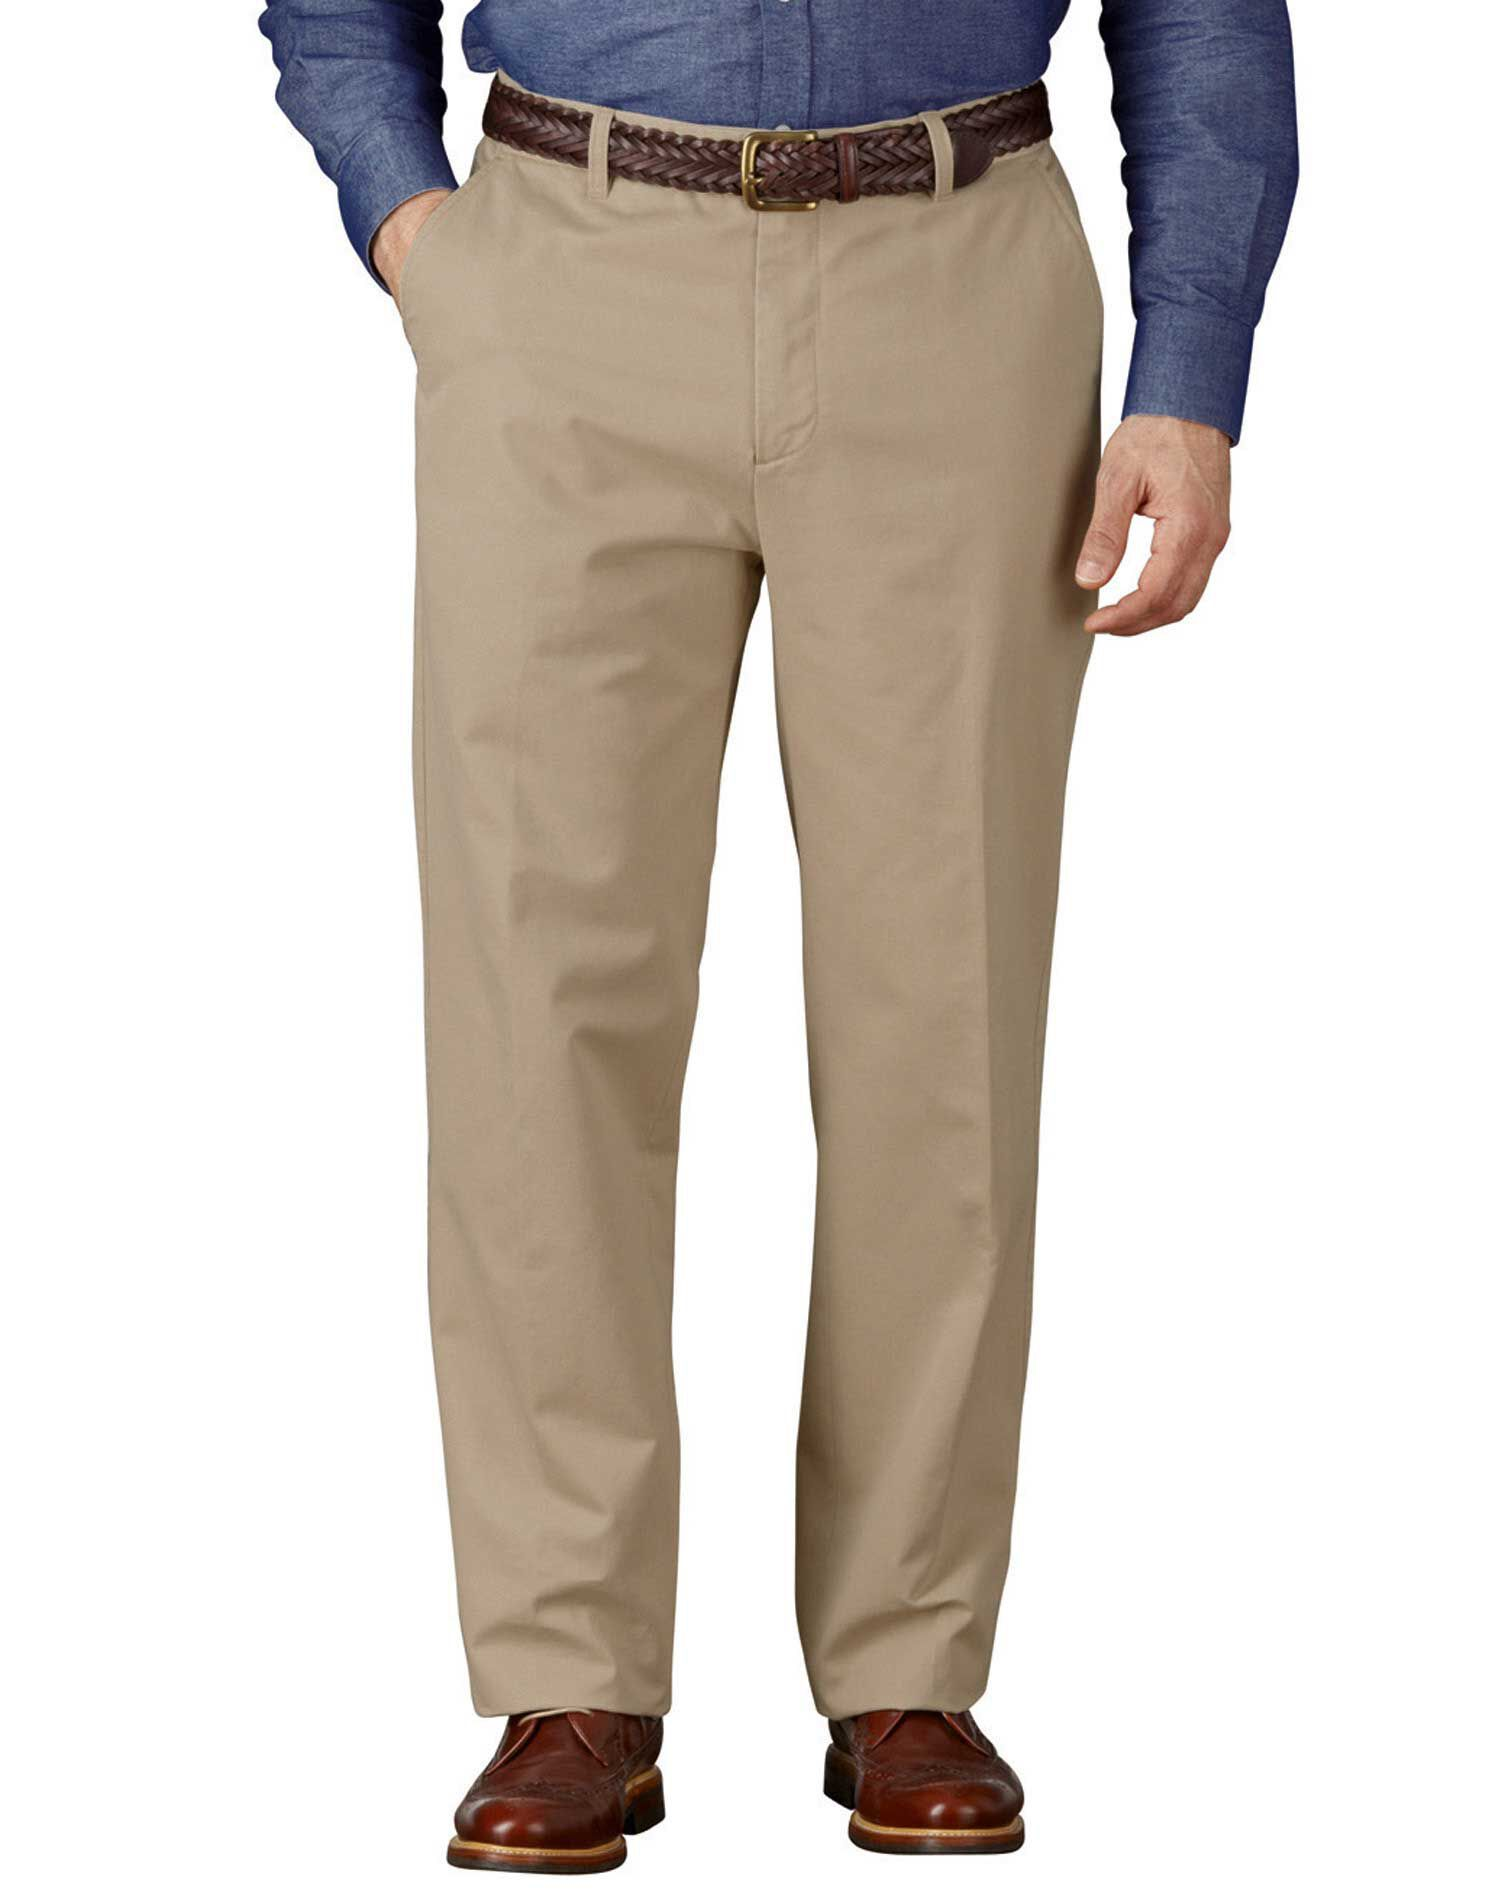 Stone Classic Fit Flat Front Weekend Cotton Chino Trousers Size W38 L30 by Charles Tyrwhitt